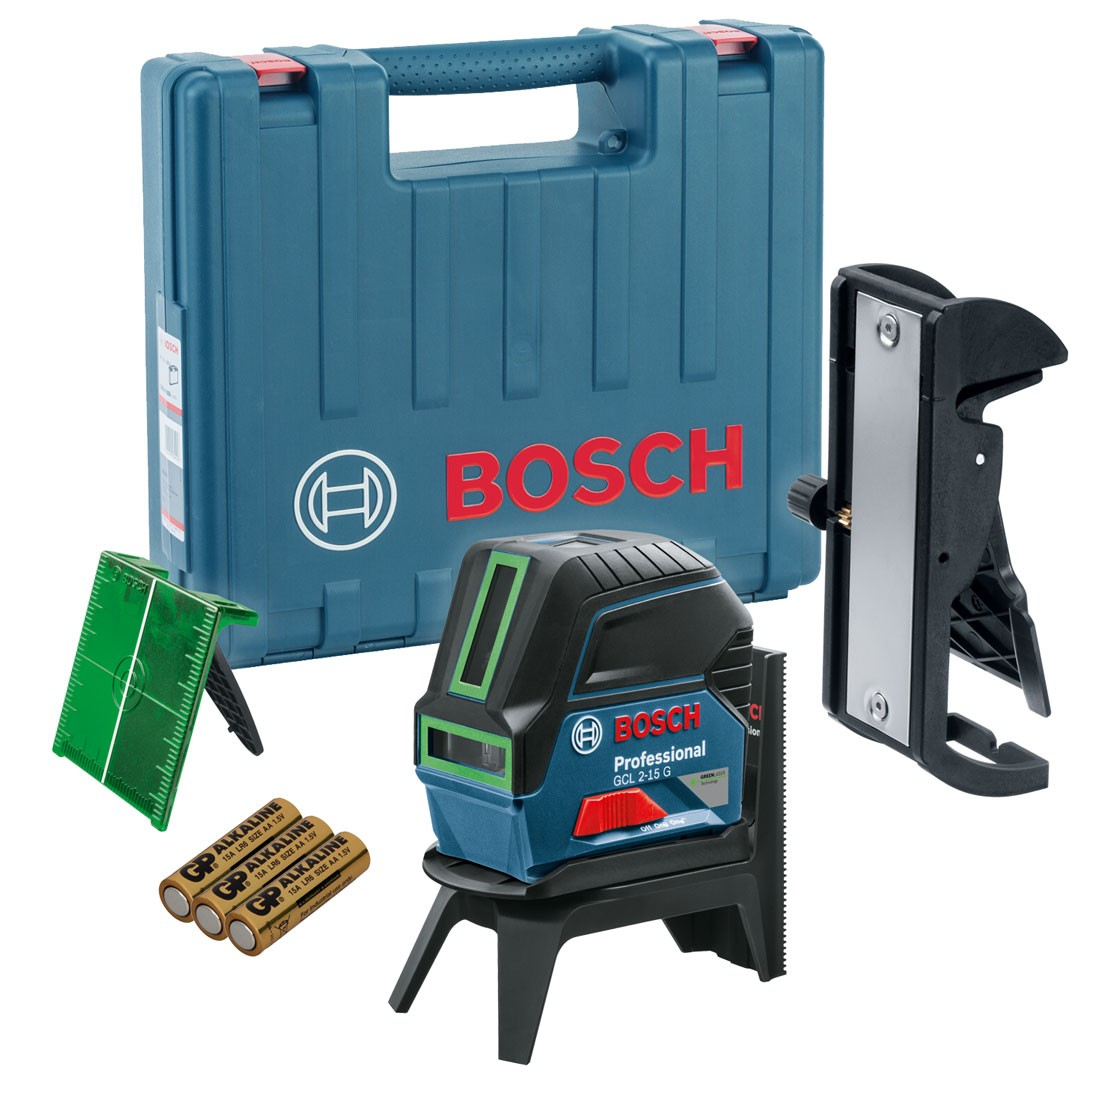 bosch gcl 2 15 g self levelling cross line laser with rm1 wall mount in carry case 0601066j00. Black Bedroom Furniture Sets. Home Design Ideas